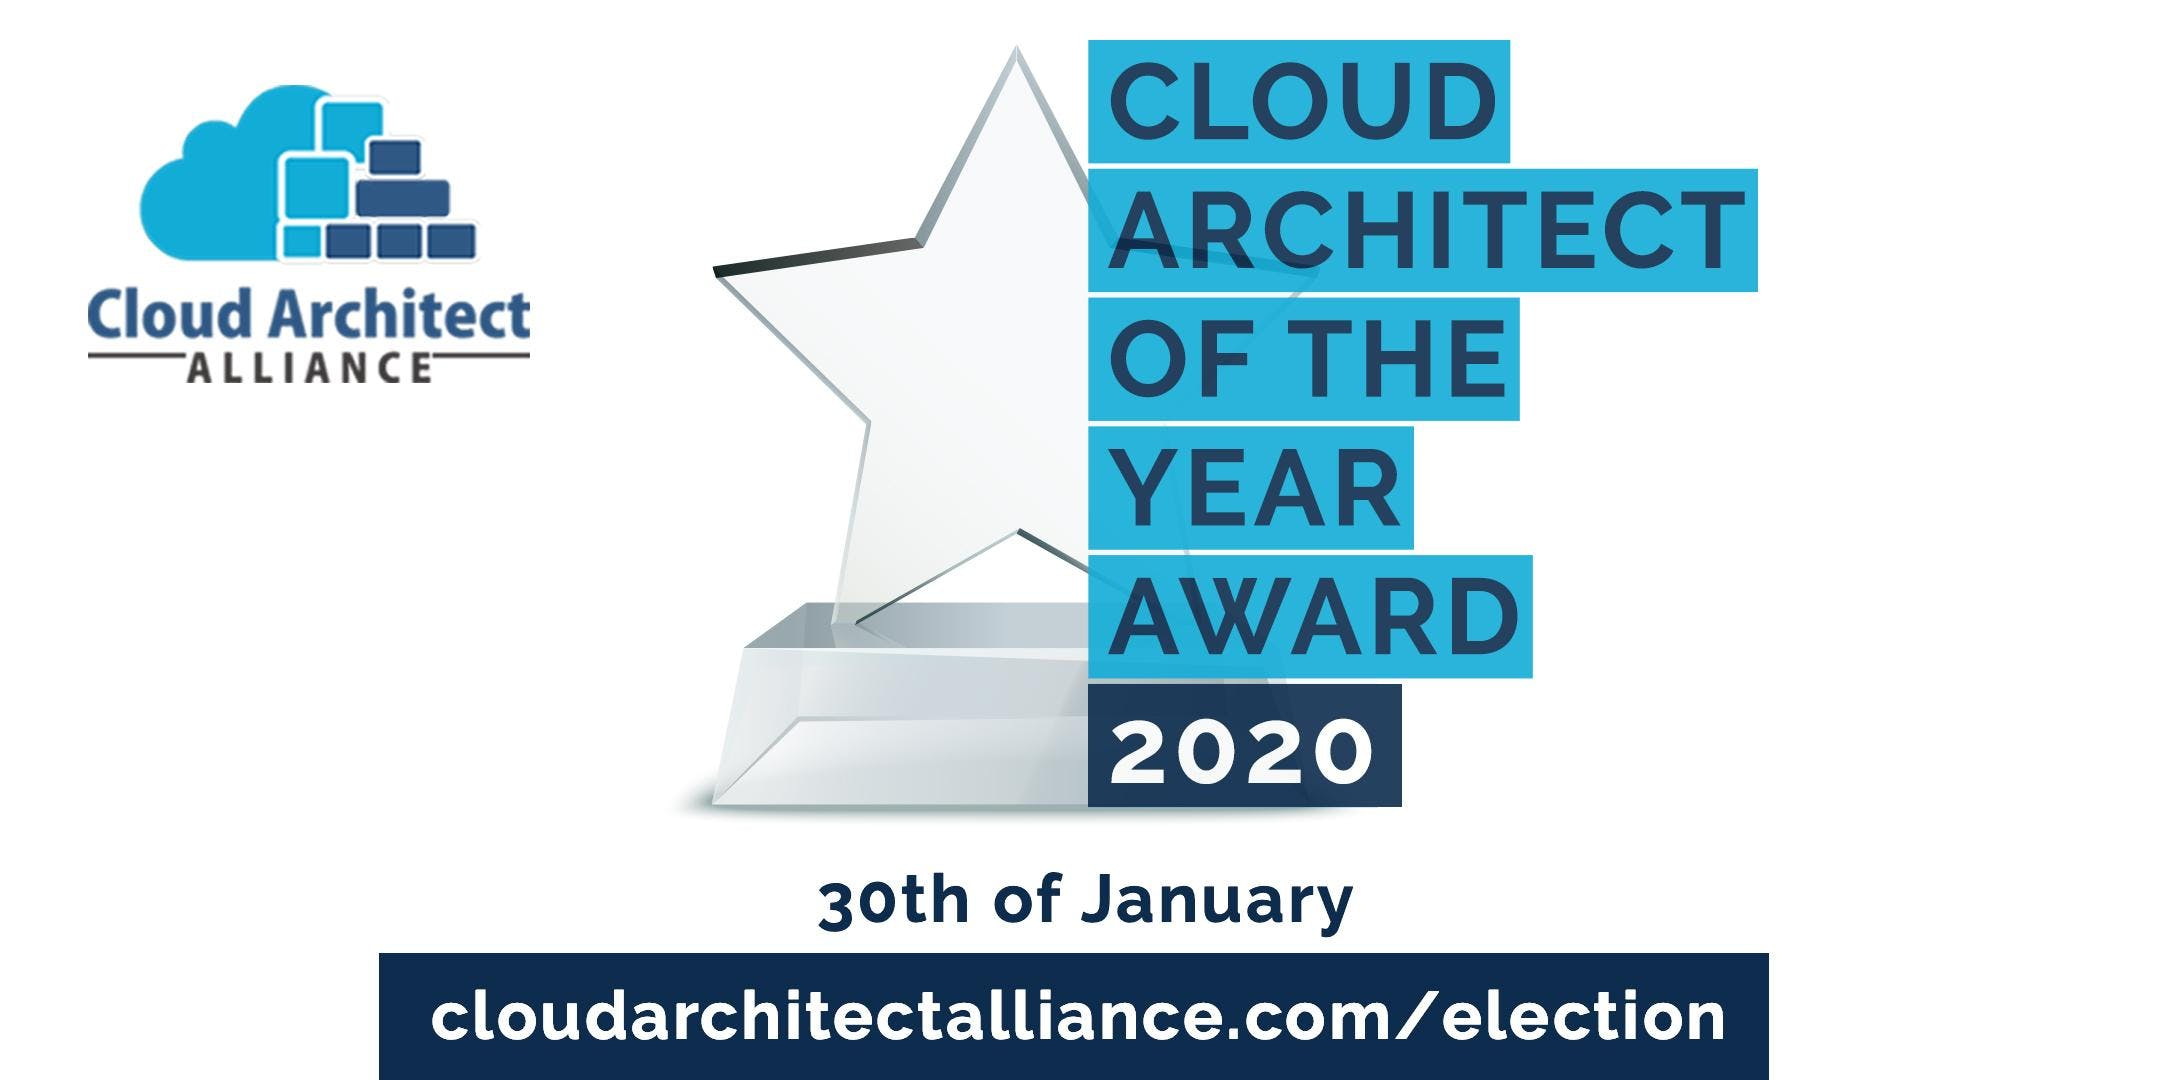 Cloud Architect of the Year Election - 30th of January